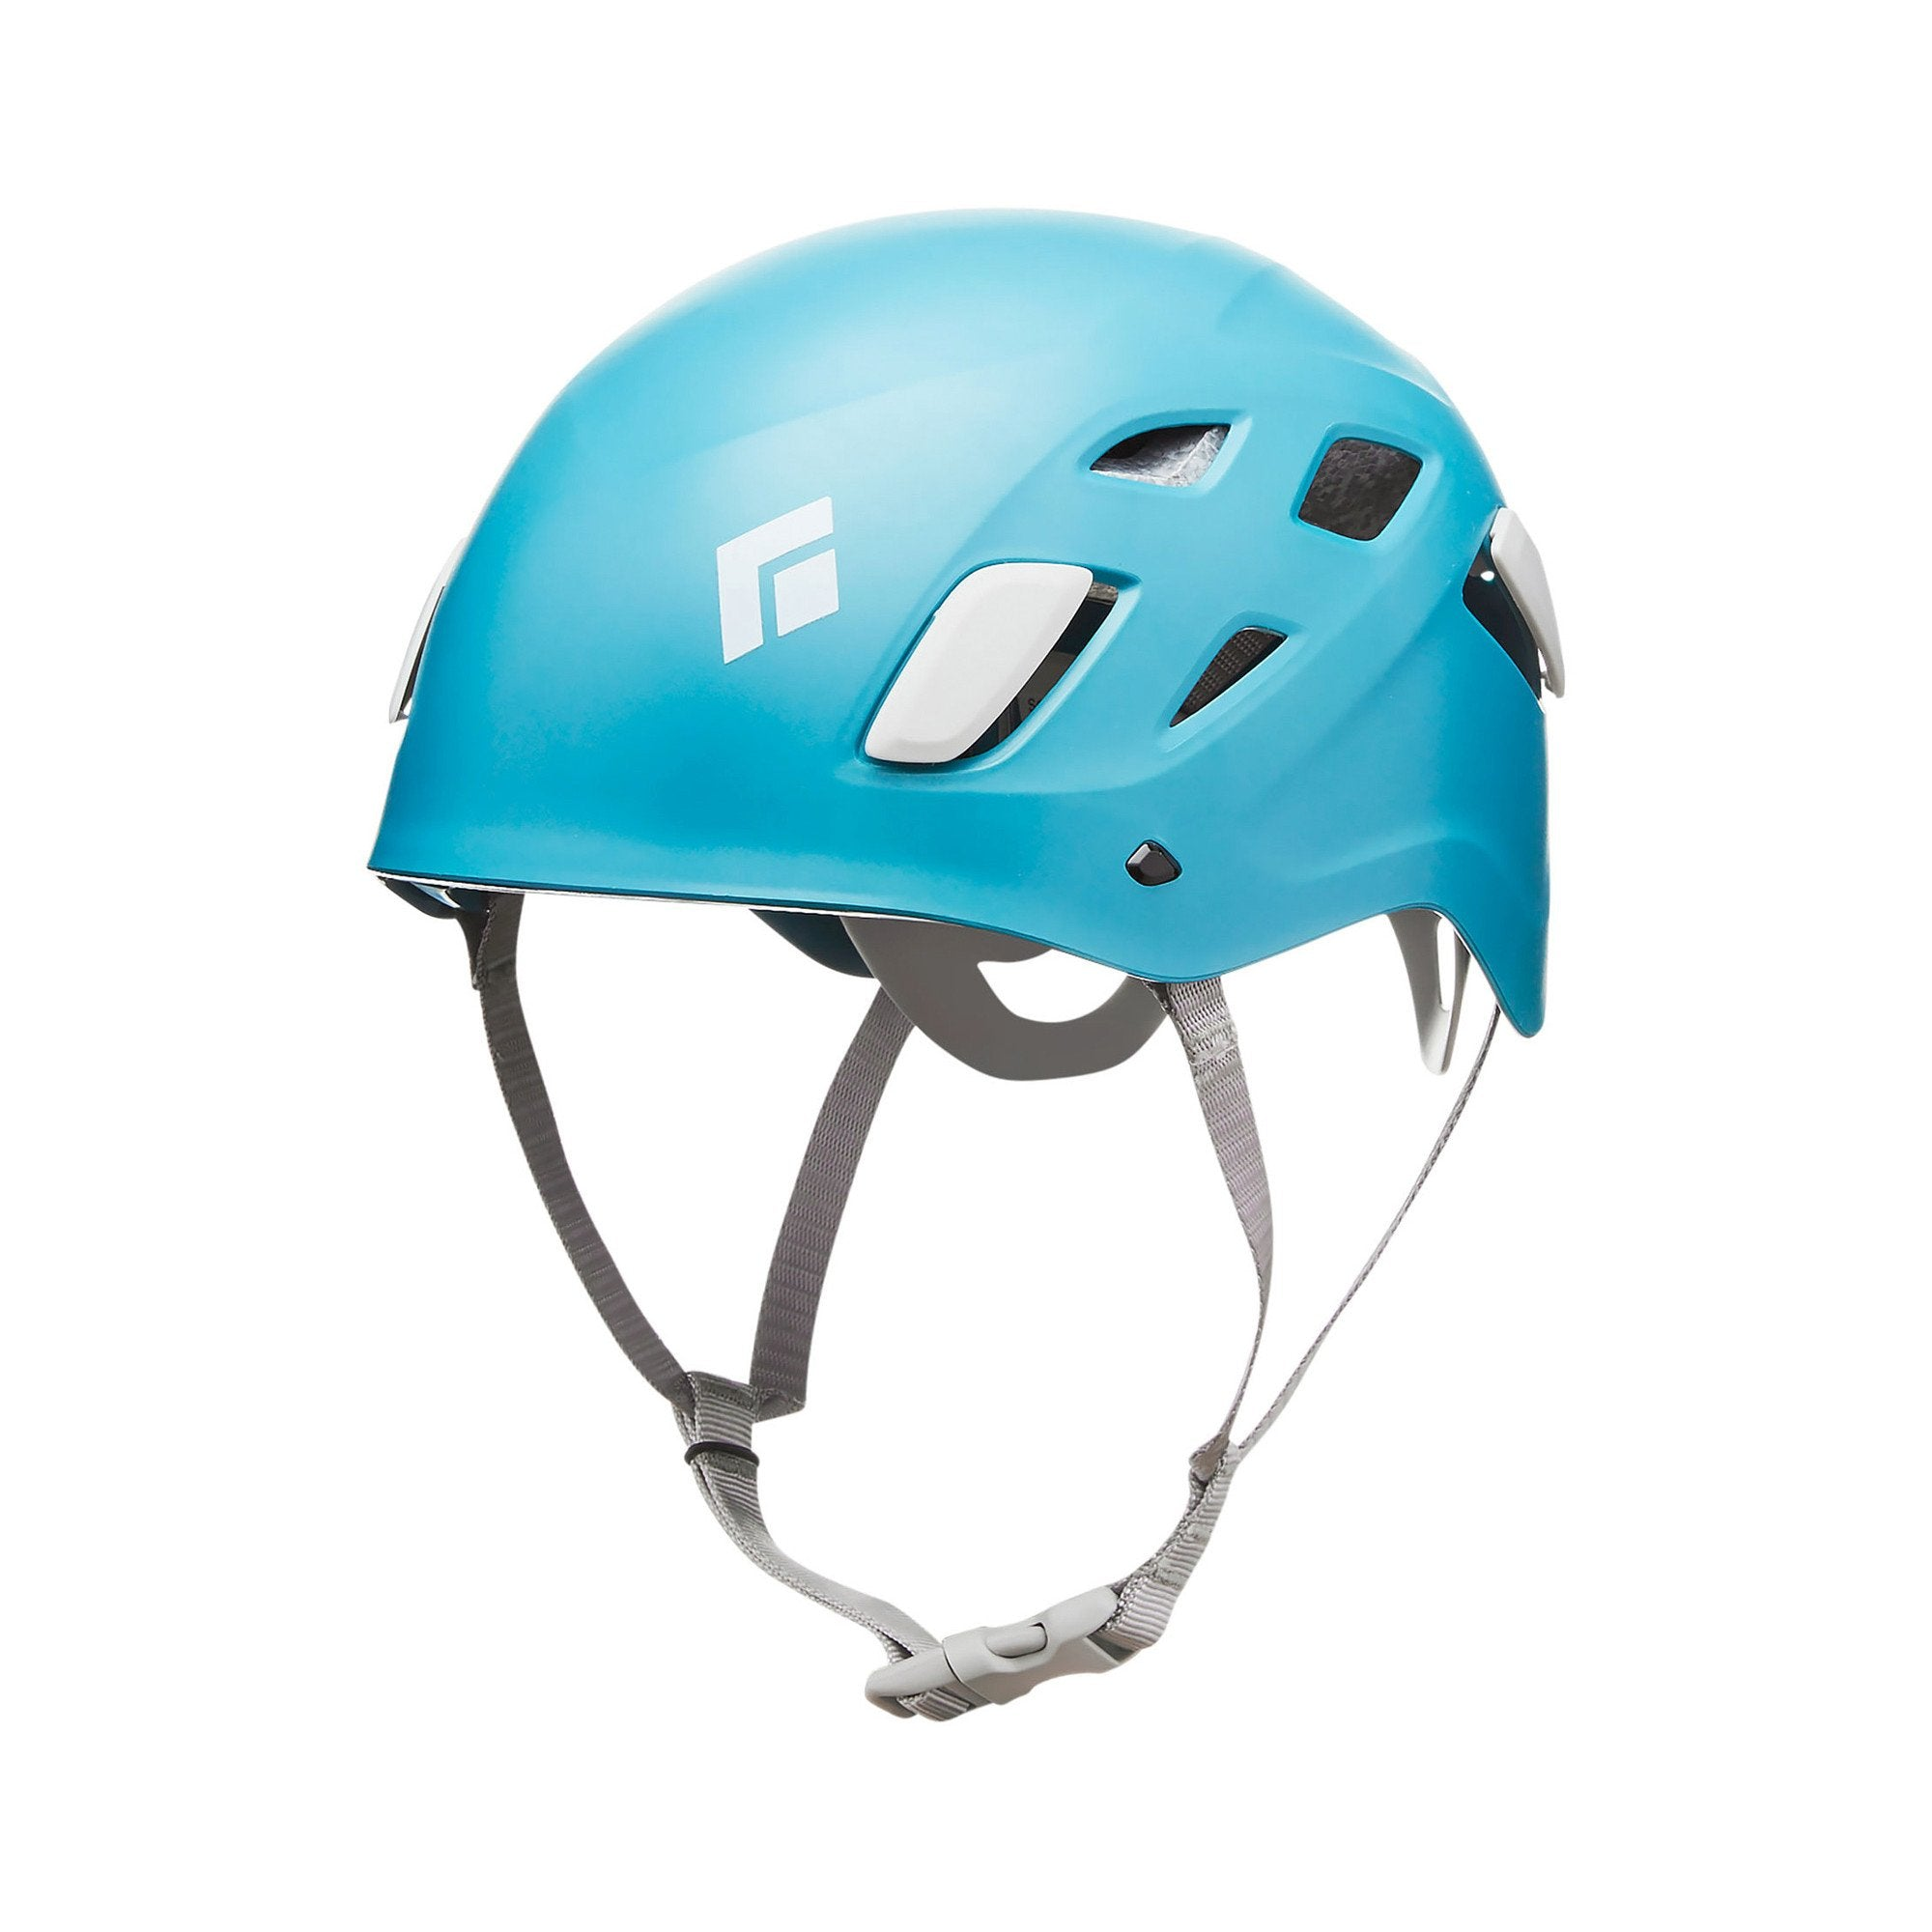 Black Diamond Half Dome Womens climbing helmet, front/side view, in blue colour with grey chin strap